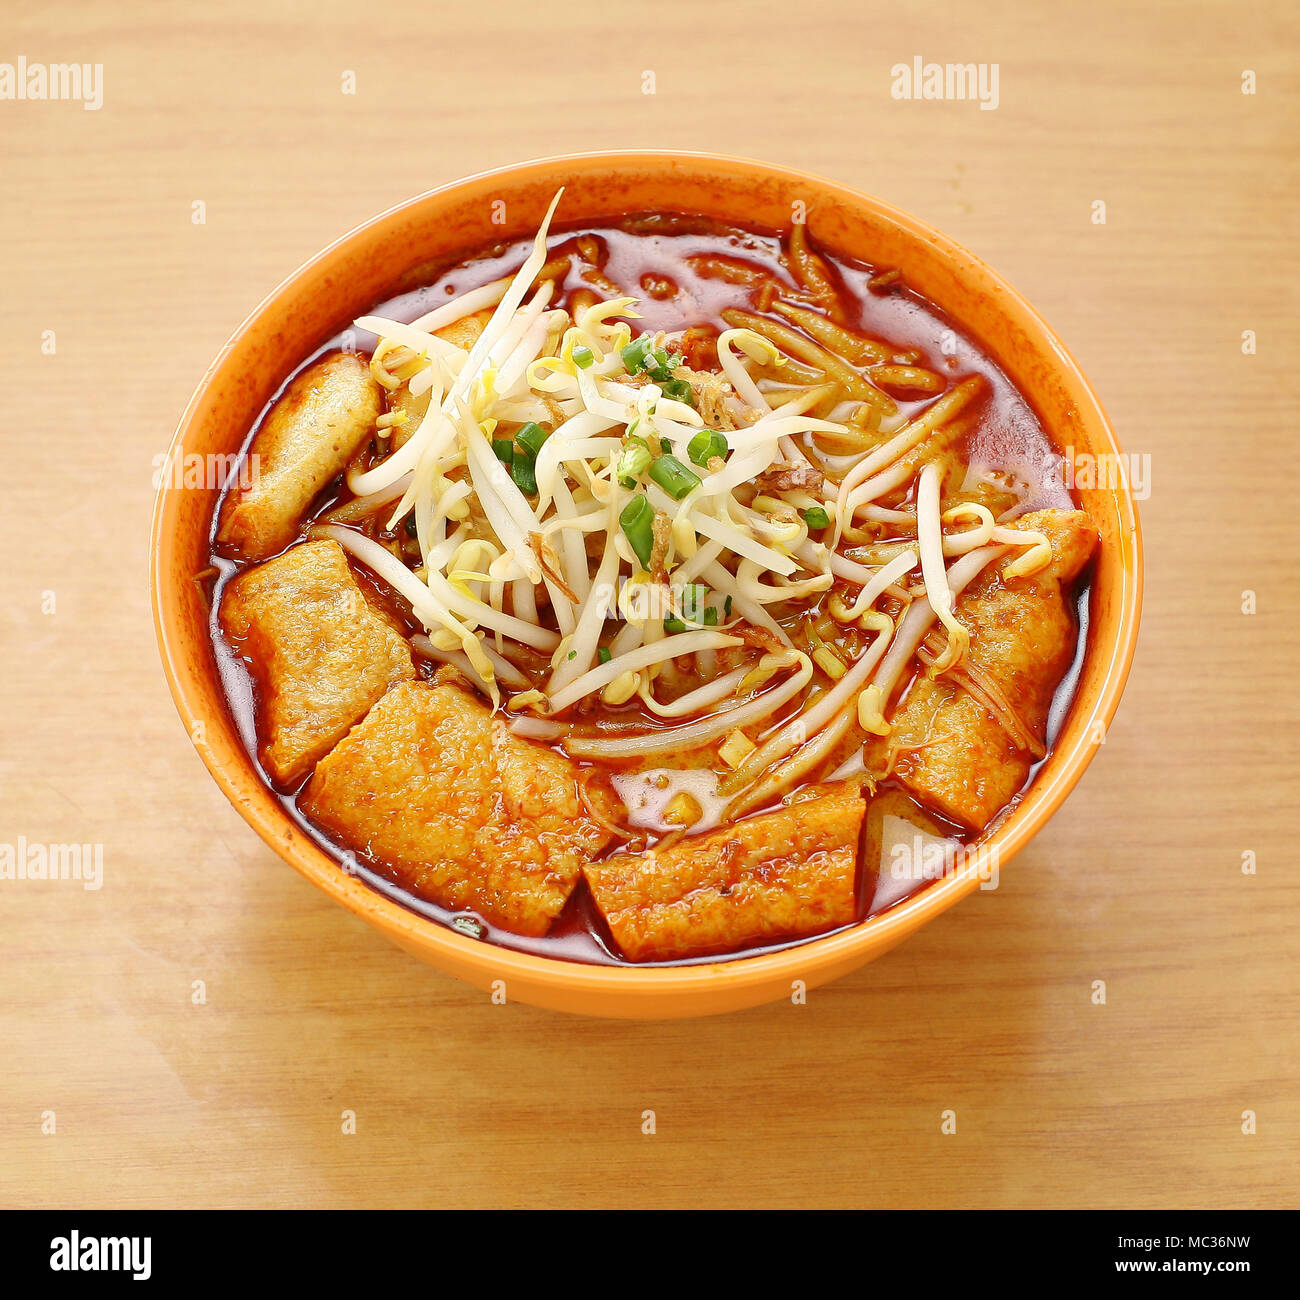 Curry Laksa Which Is A Popular Traditional Spicy Noodle Soup From The Peranakan Culture In Malaysia And Singapore Stock Photo Alamy